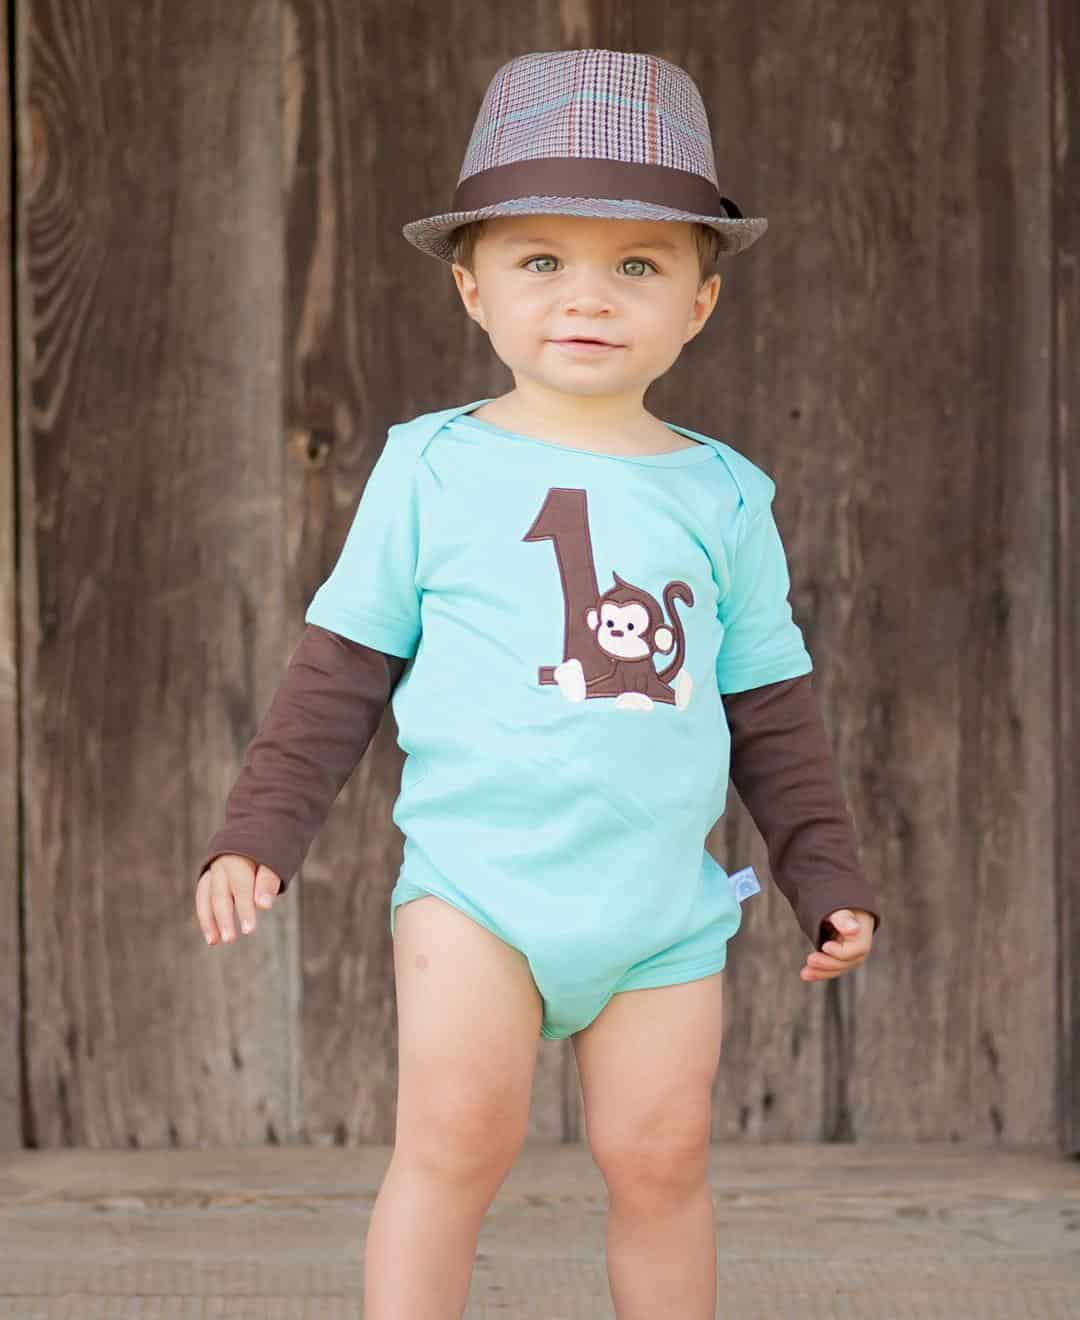 20 cute outfits ideas for baby boys 1st birthday party for Baby boy picture ideas